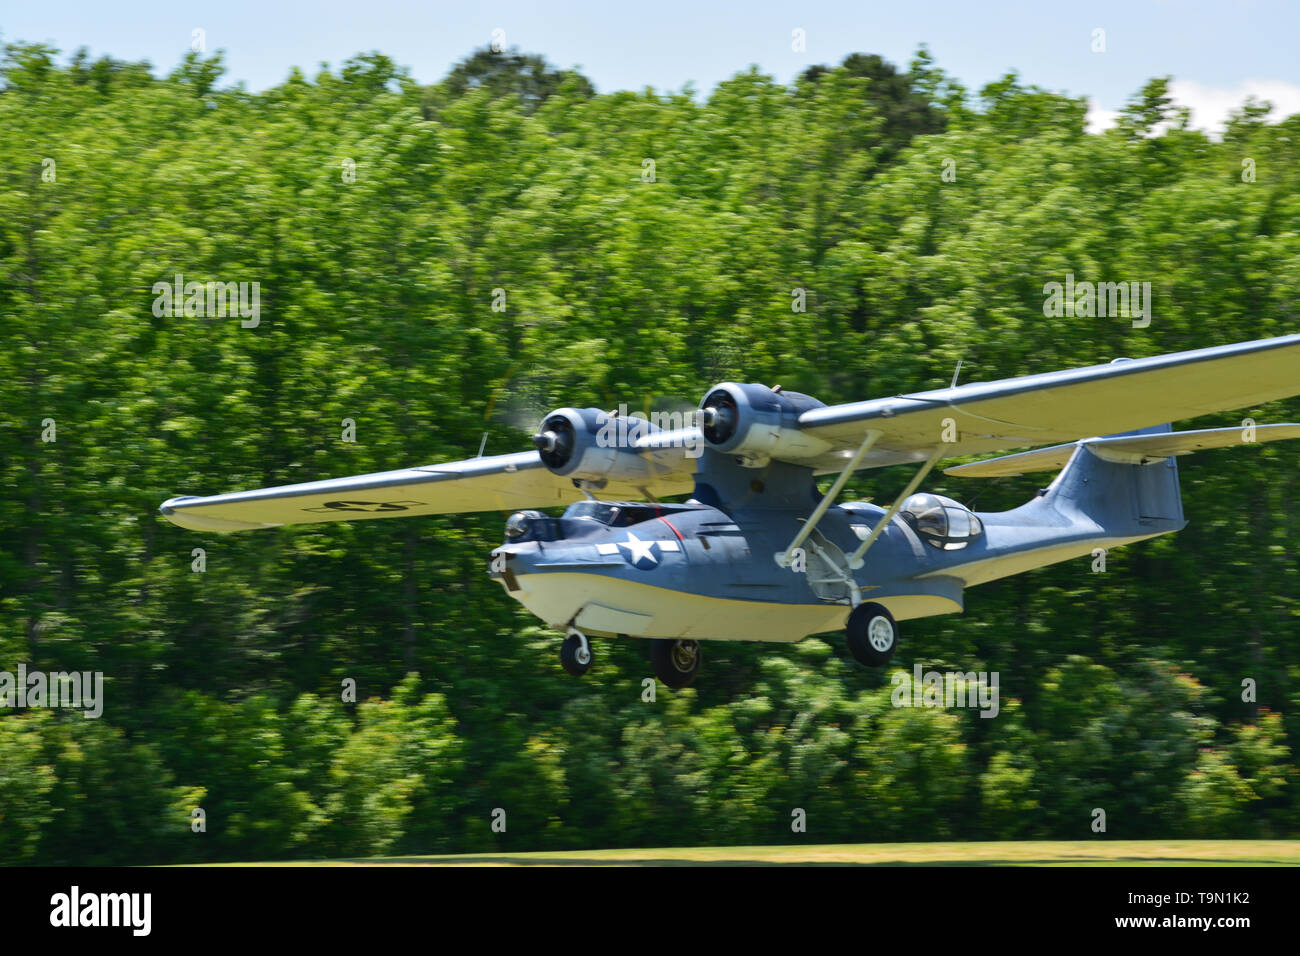 A restored PBY Catalina during takeoff in the 2019 Virginia Beach Military Aviation Museum WWII show. - Stock Image